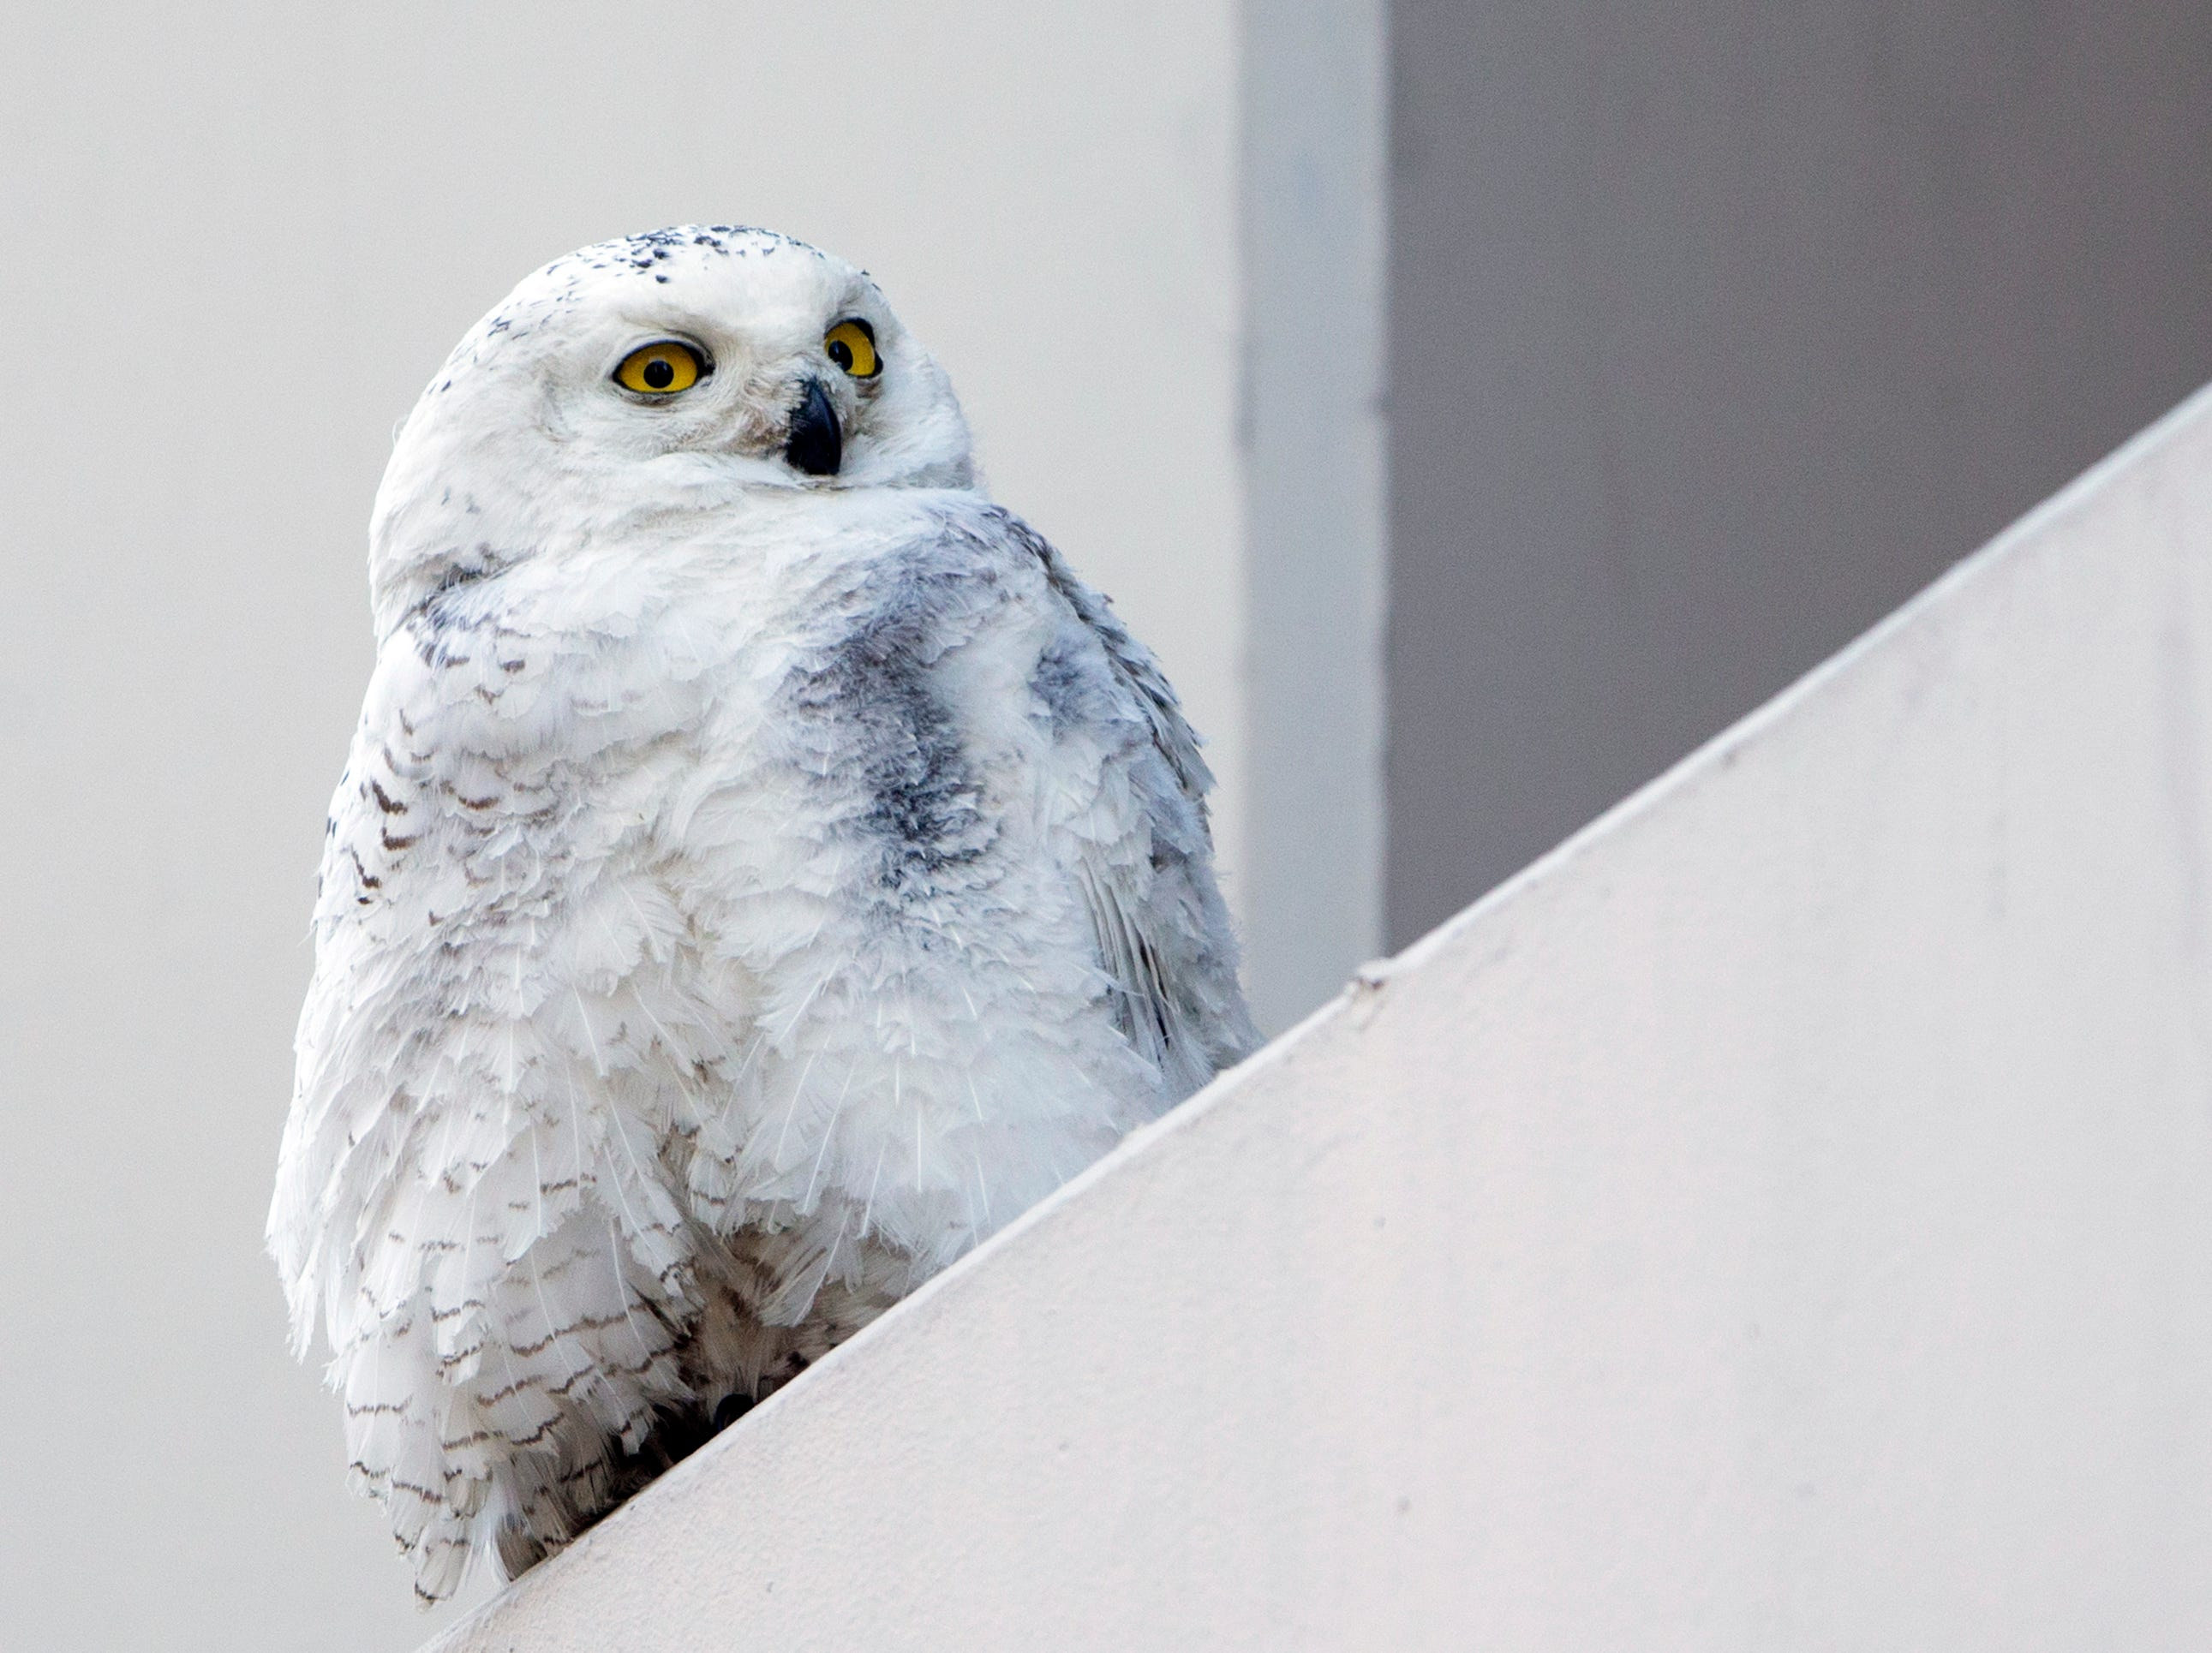 In this Jan. 24, 2014 file photo, a snowy owl rests on a ledge of a building in Washington. Reports from tens of thousands of bird-counting volunteers show a southern invasion of Arctic-dwelling snowy owls has spread to 25 states, and frigid cold is causing unusual movements of waterfowl.